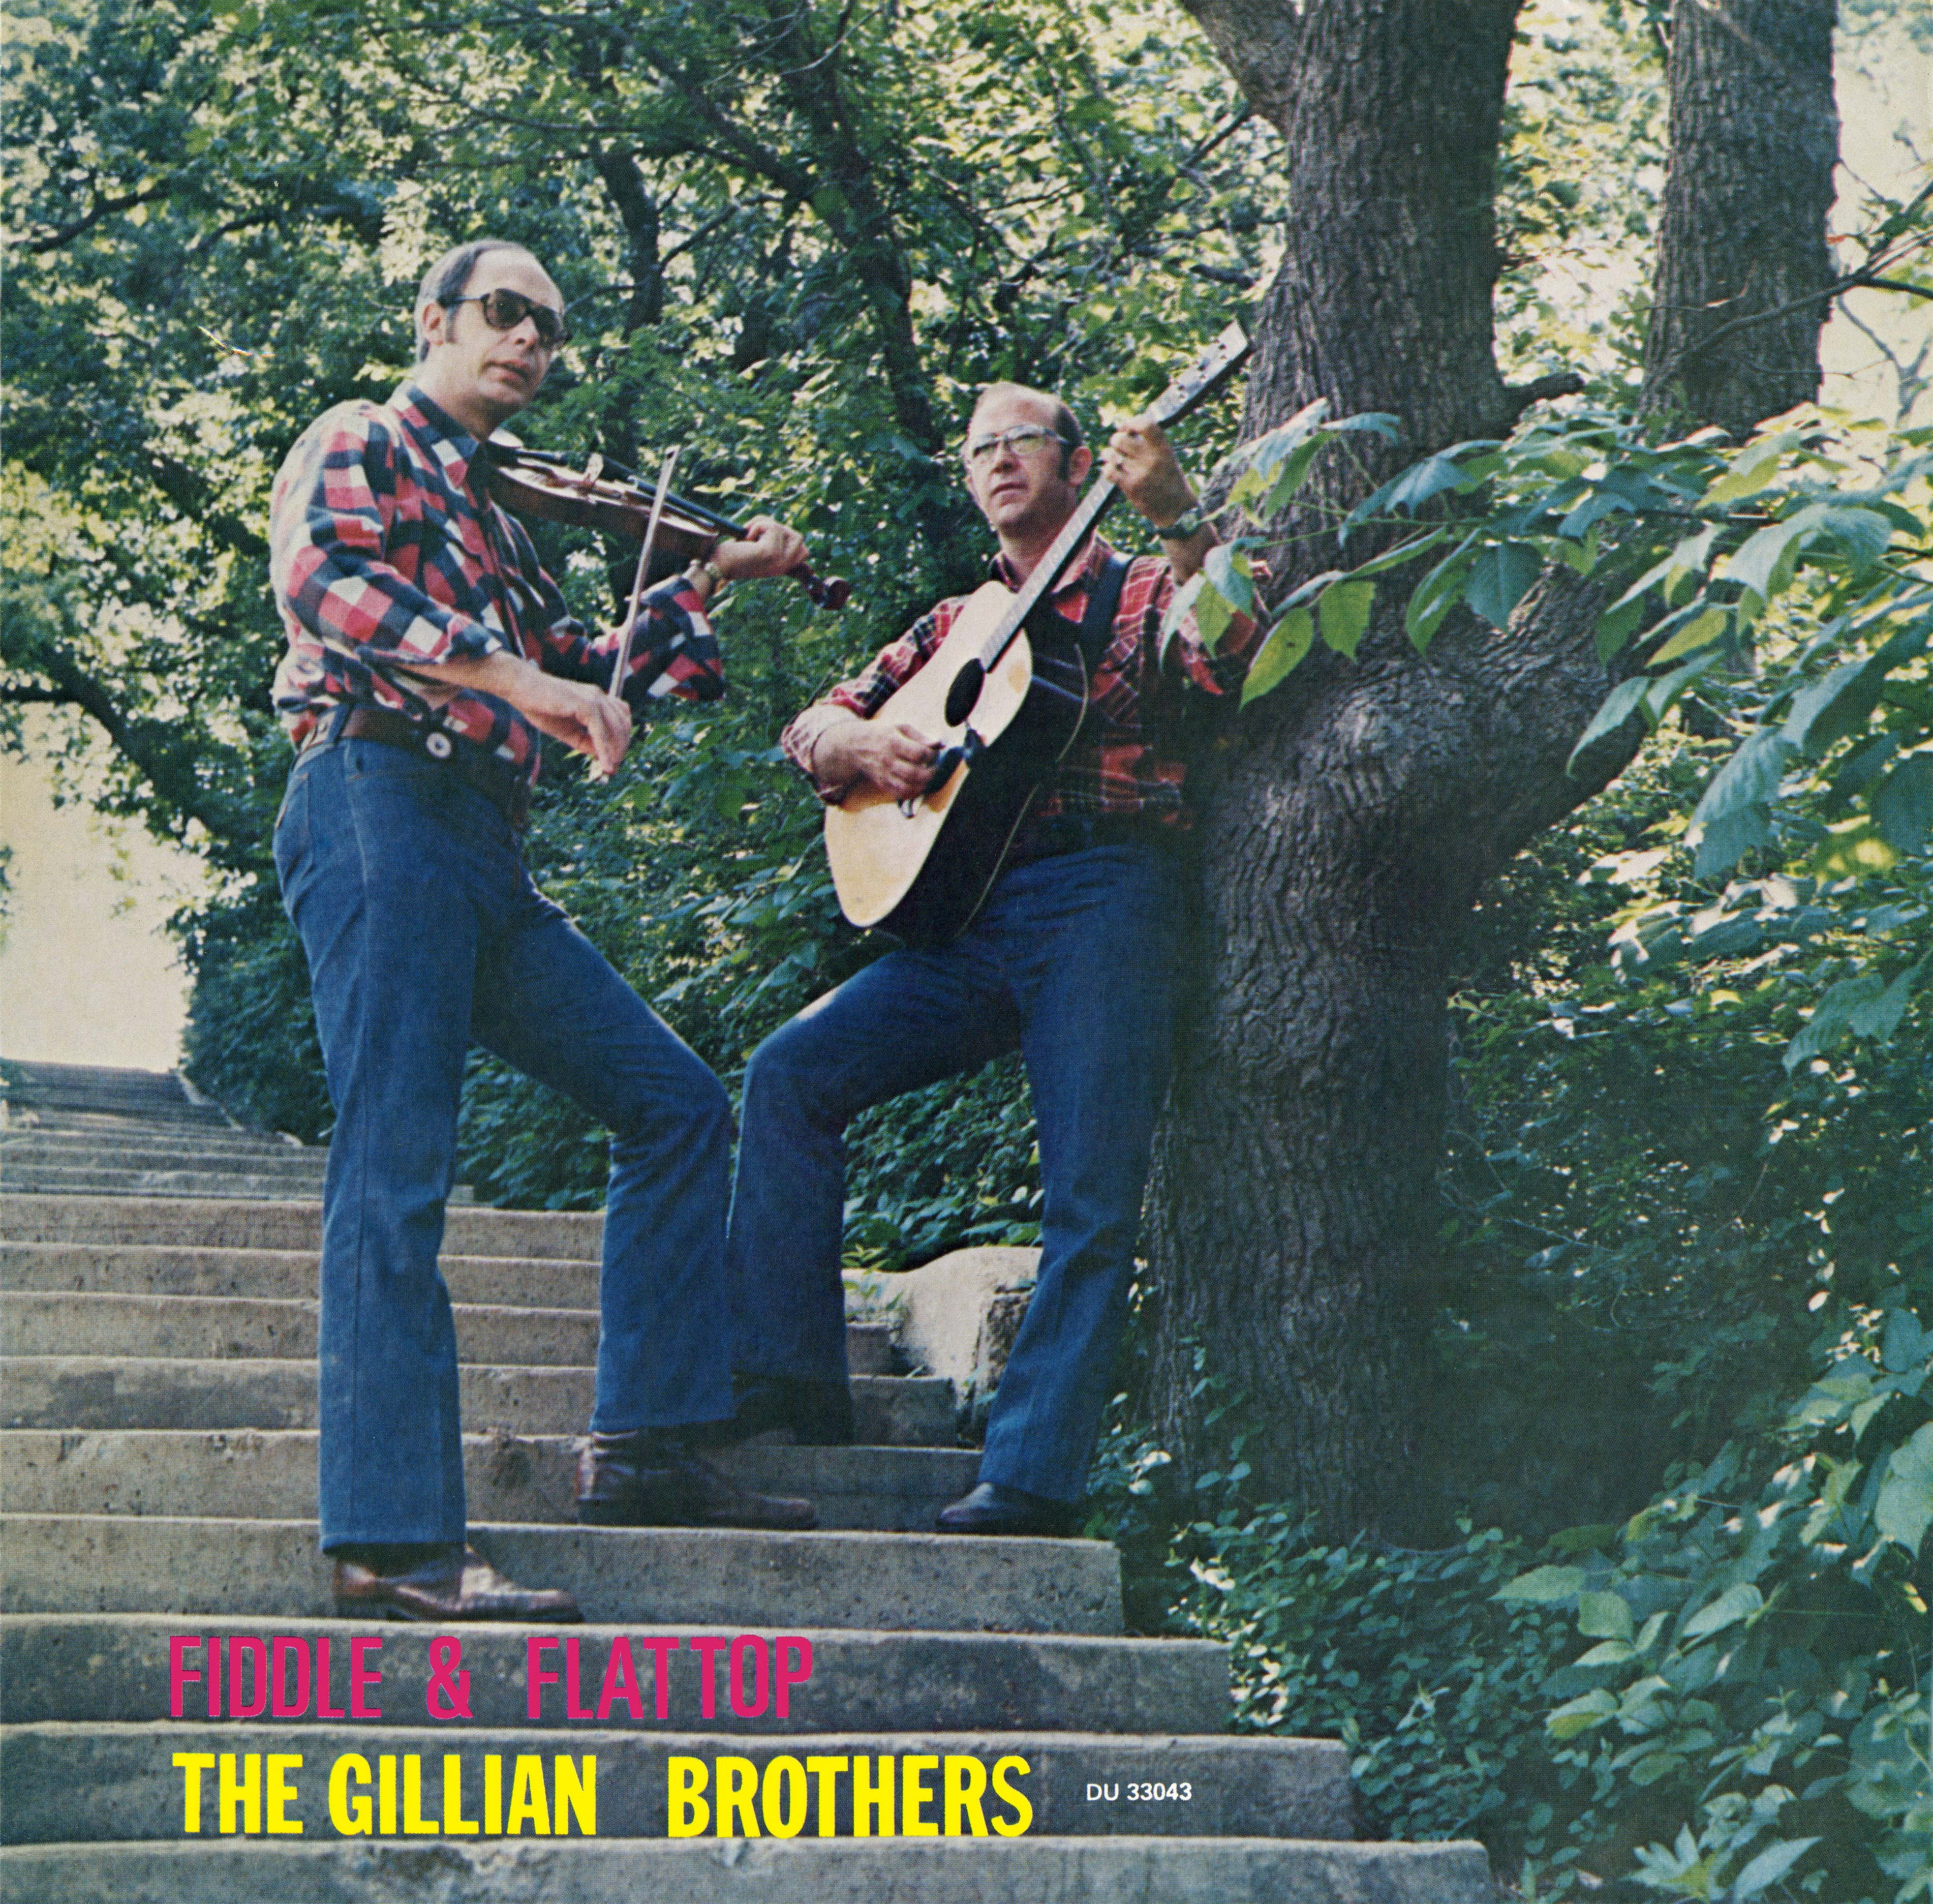 The Gillian Brothers - Fiddle and Flattop